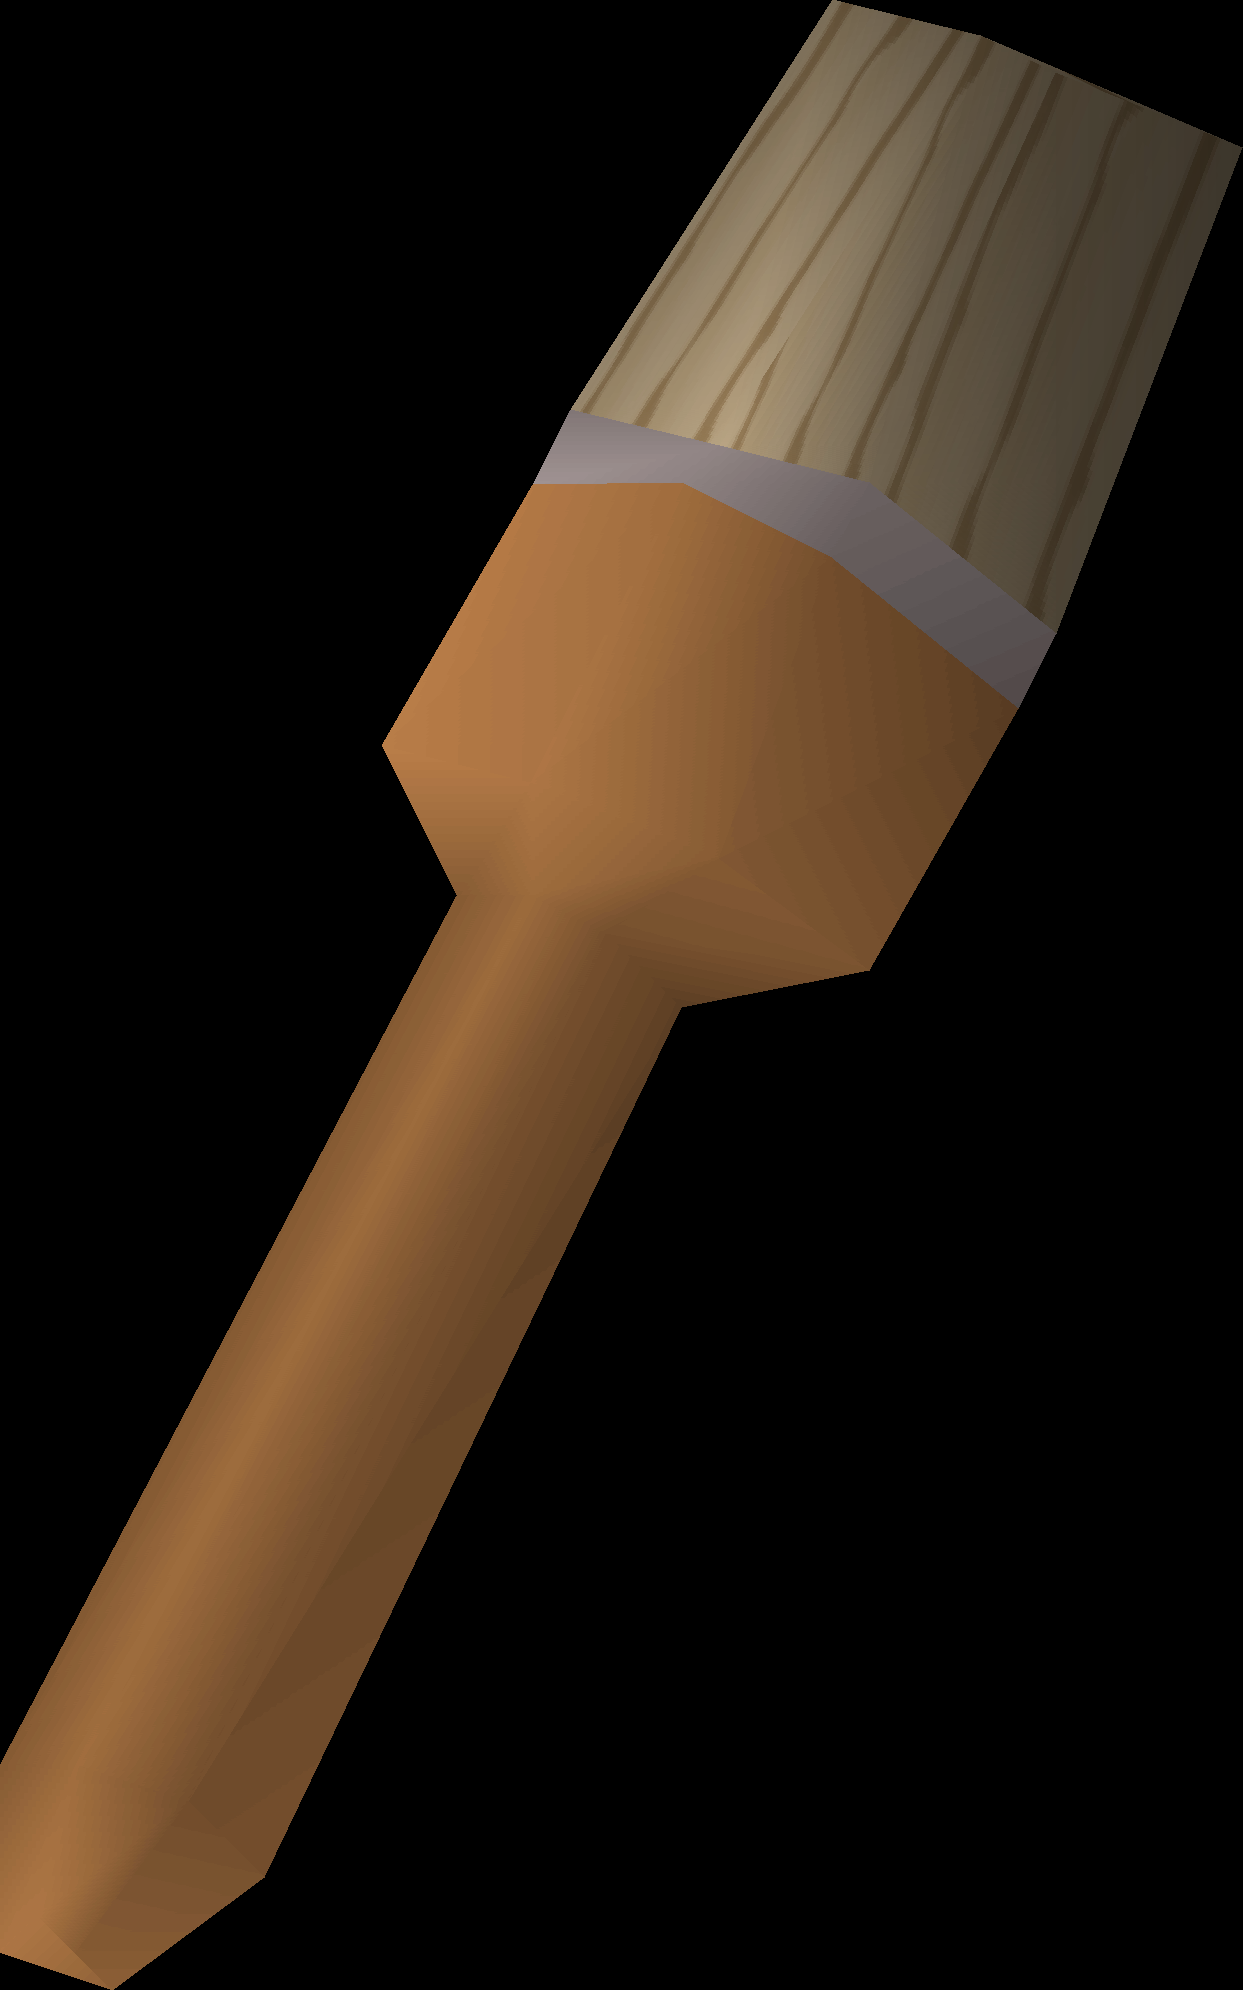 File:Specimen brush detail.png